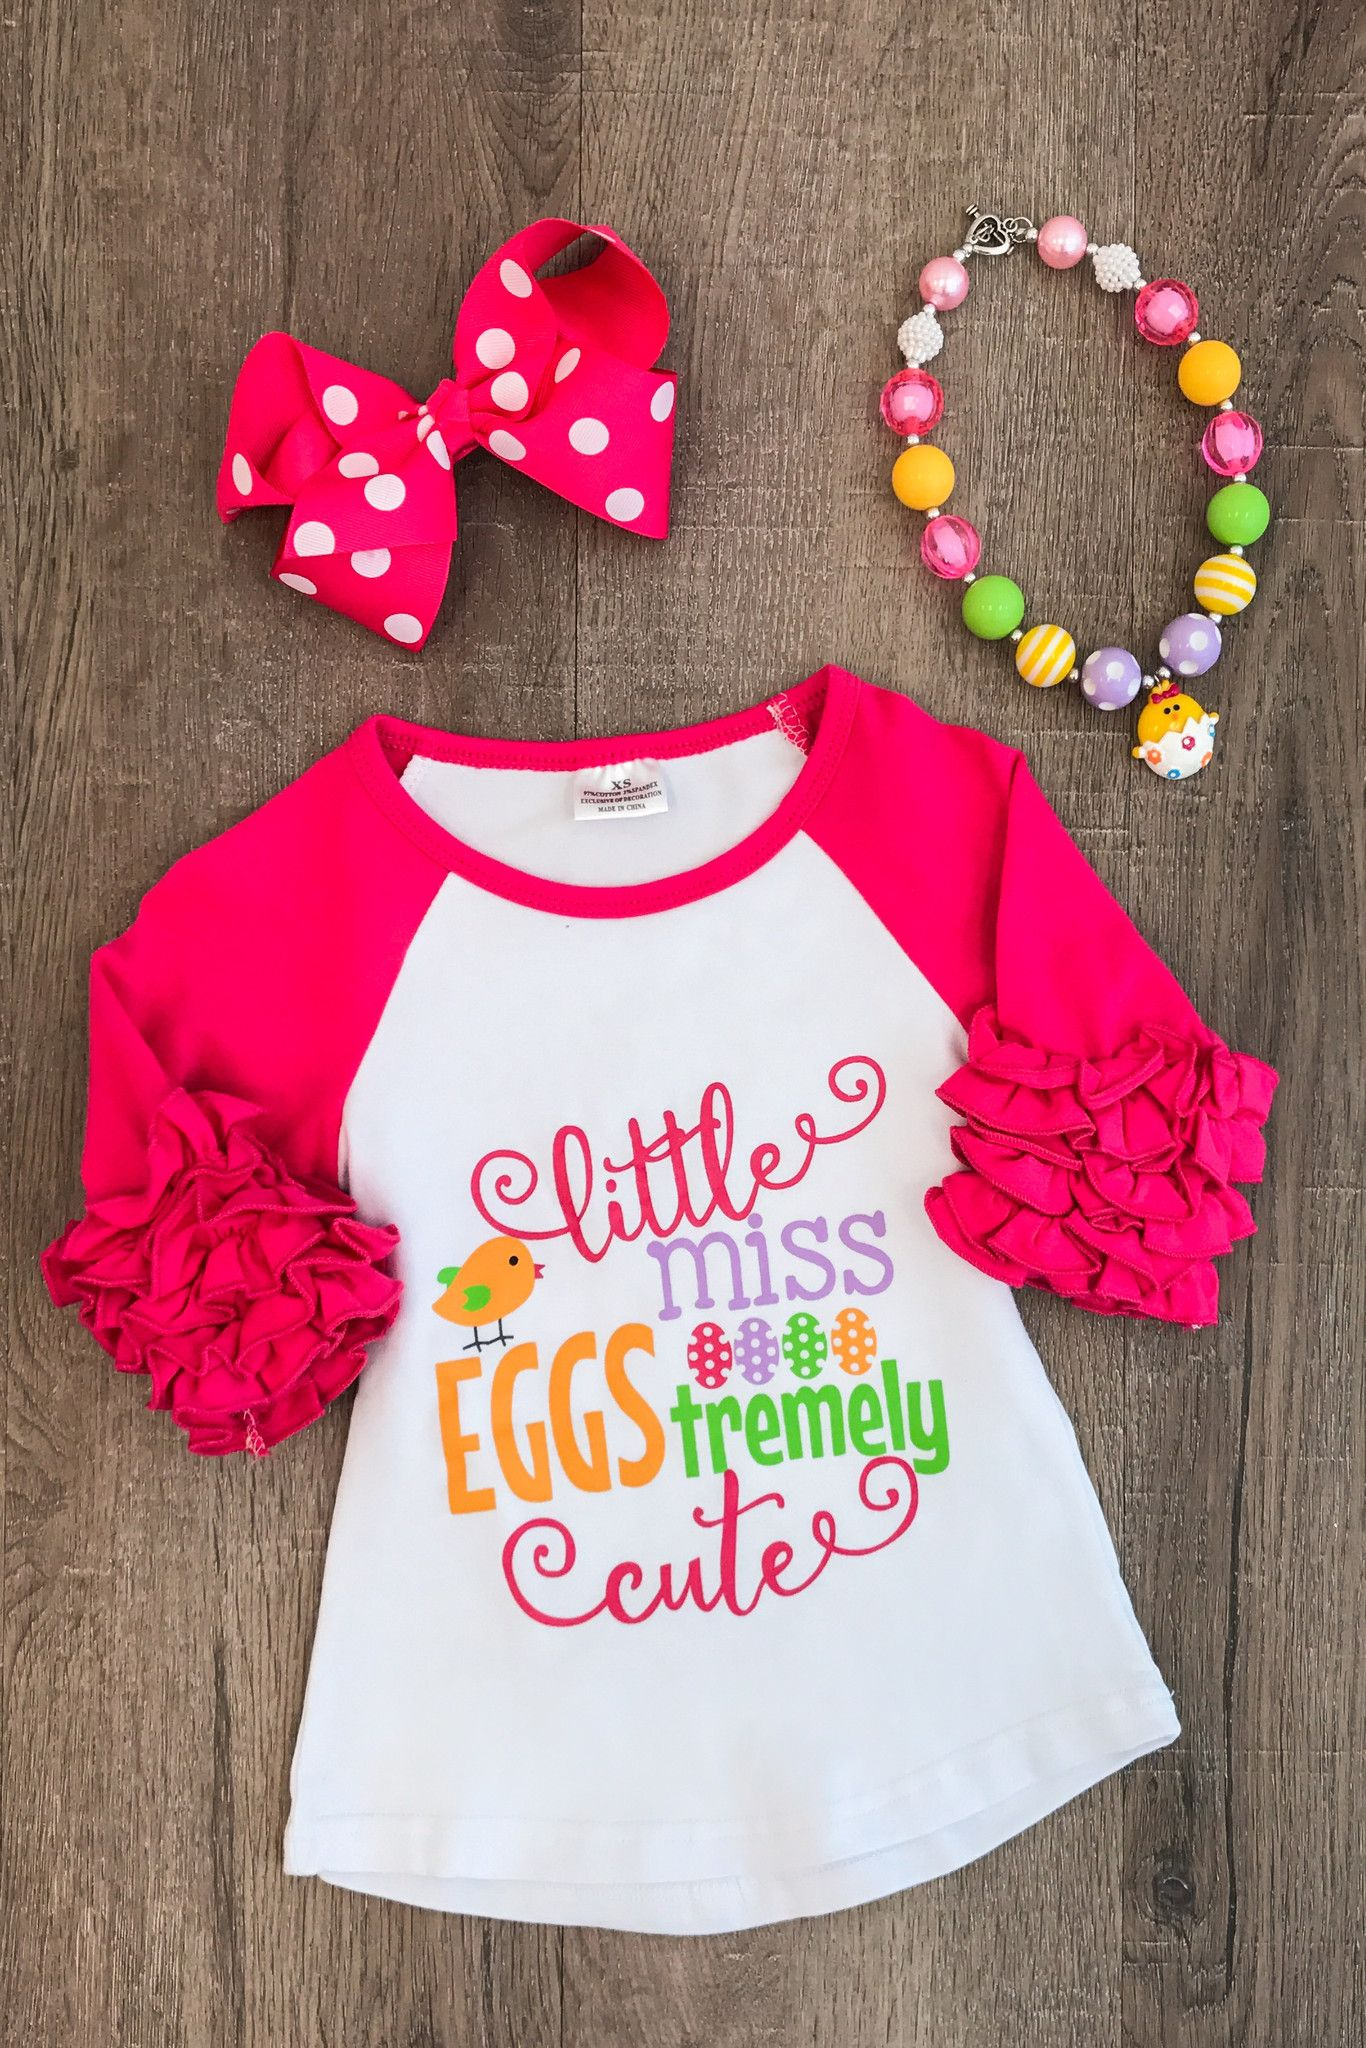 3 4 Sleeve Little Miss Eggstremely Cute Shirt From Sparkle In Pink Our Adorable Hot Pink Ruff With Images Baby Girl Easter Outfit Girls Easter Shirt Girls Easter Dresses